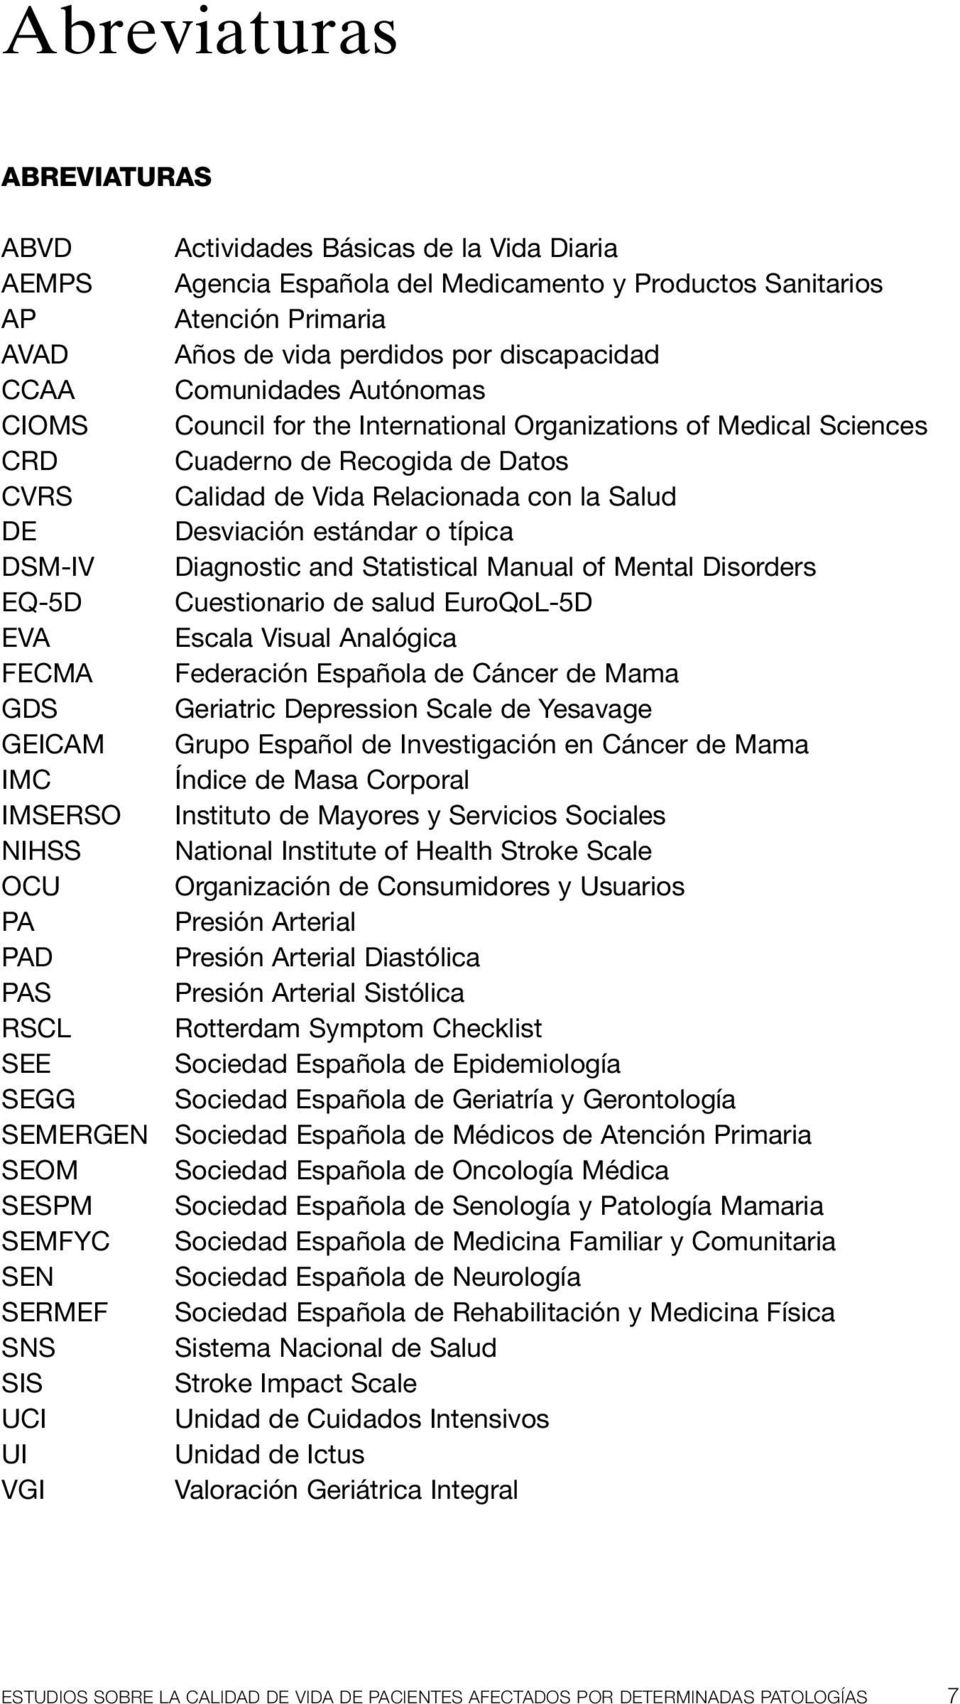 o típica DSM-IV Diagnostic and Statistical Manual of Mental Disorders EQ-5D Cuestionario de salud EuroQoL-5D EVA Escala Visual Analógica FECMA Federación Española de Cáncer de Mama GDS Geriatric